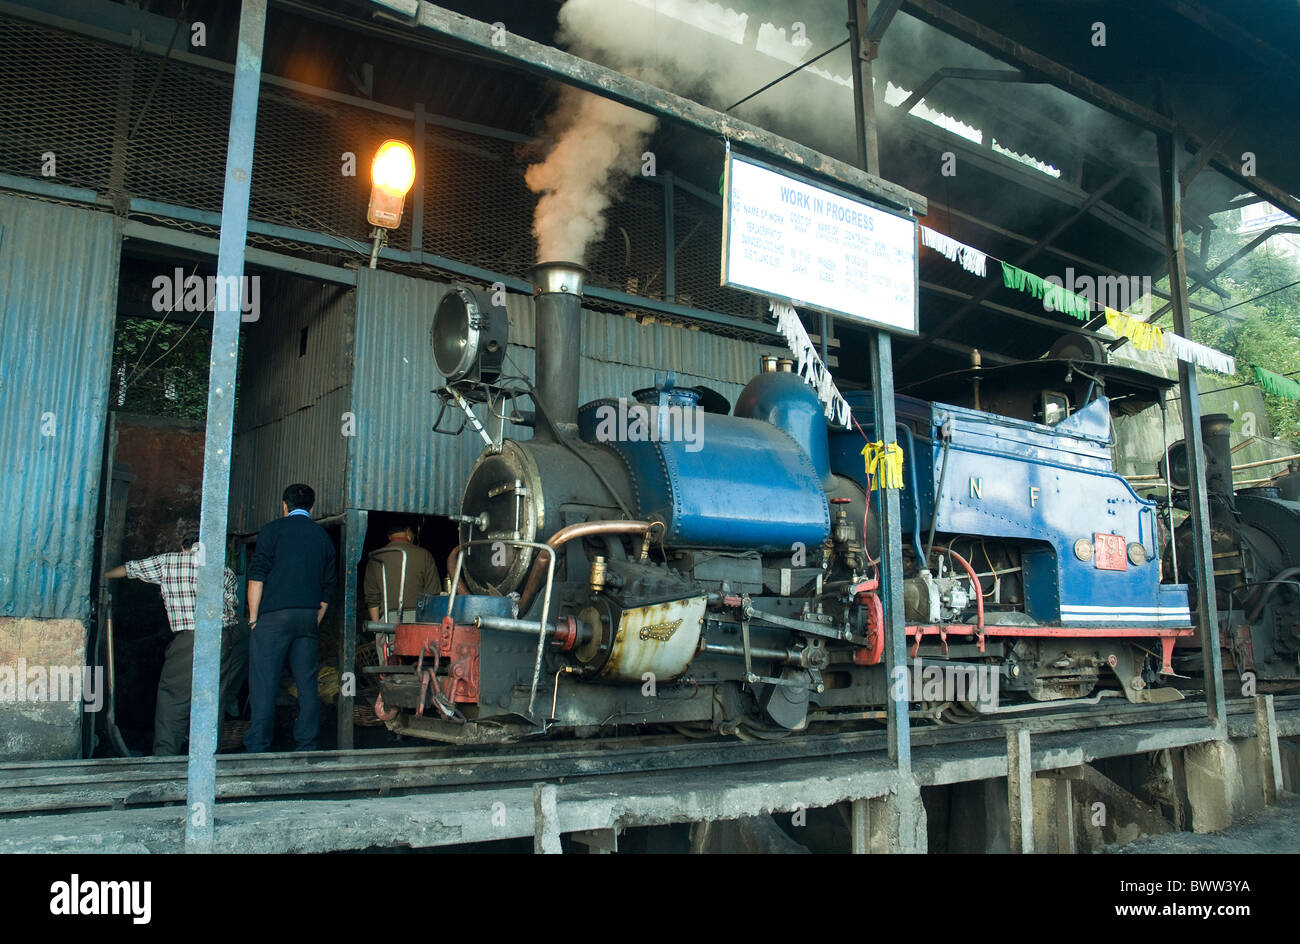 Old steam locomotives with a British origin still function on the Darjeeling-based Himalayan railway - Stock Image